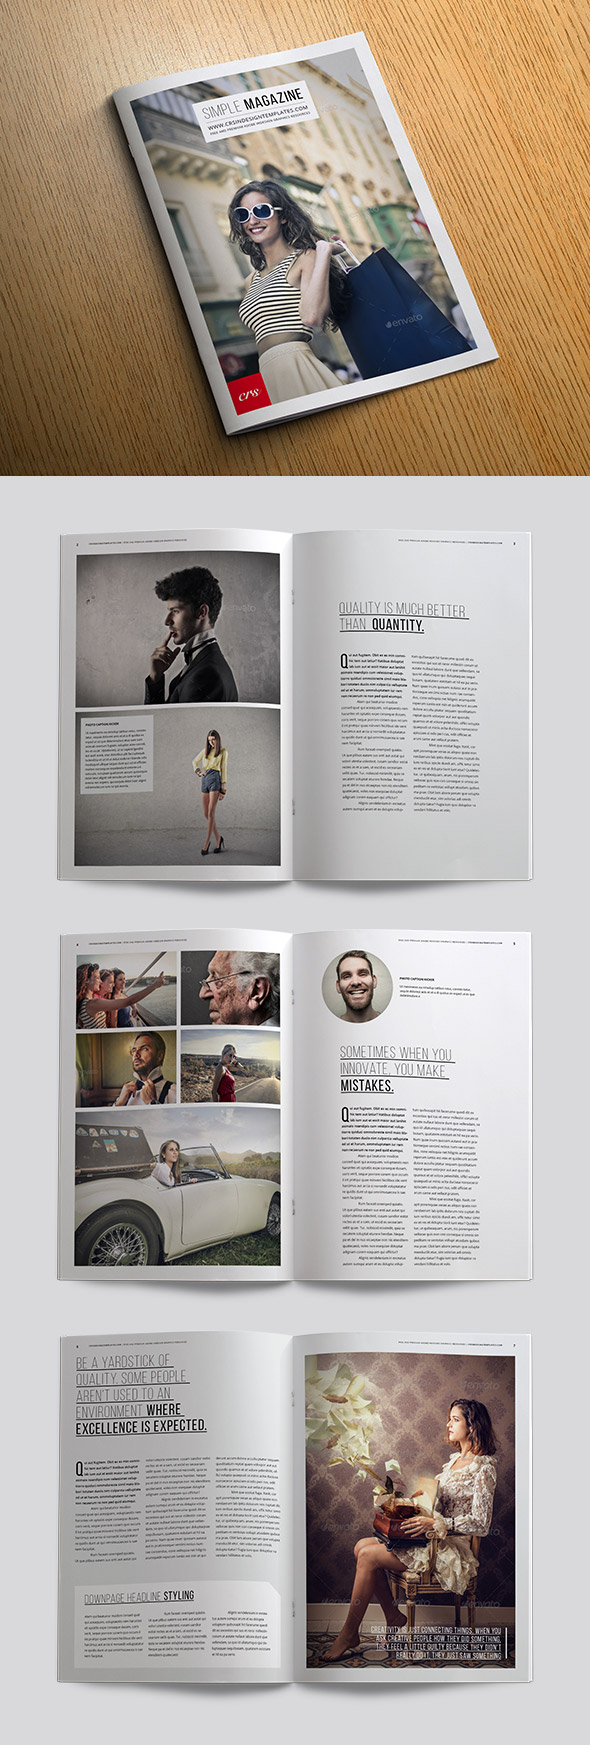 Free Simple Magazine Template - CRS InDesign Templates